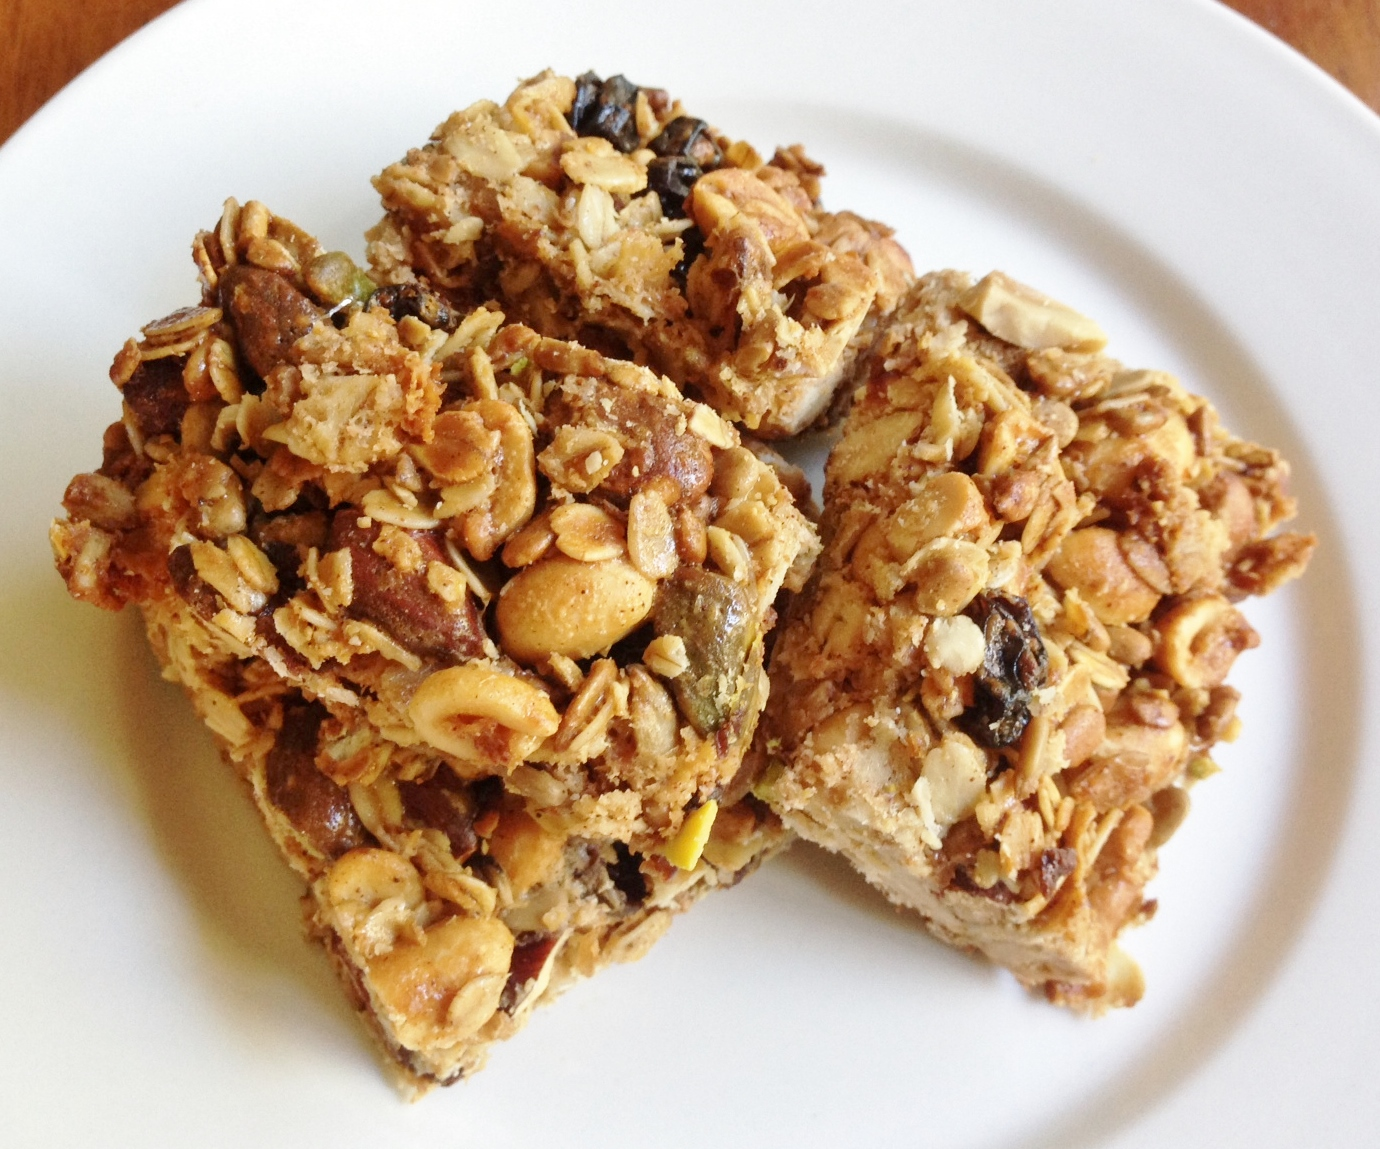 Gluten Free Homemade Granola Bars | Gluten Free Recipes+